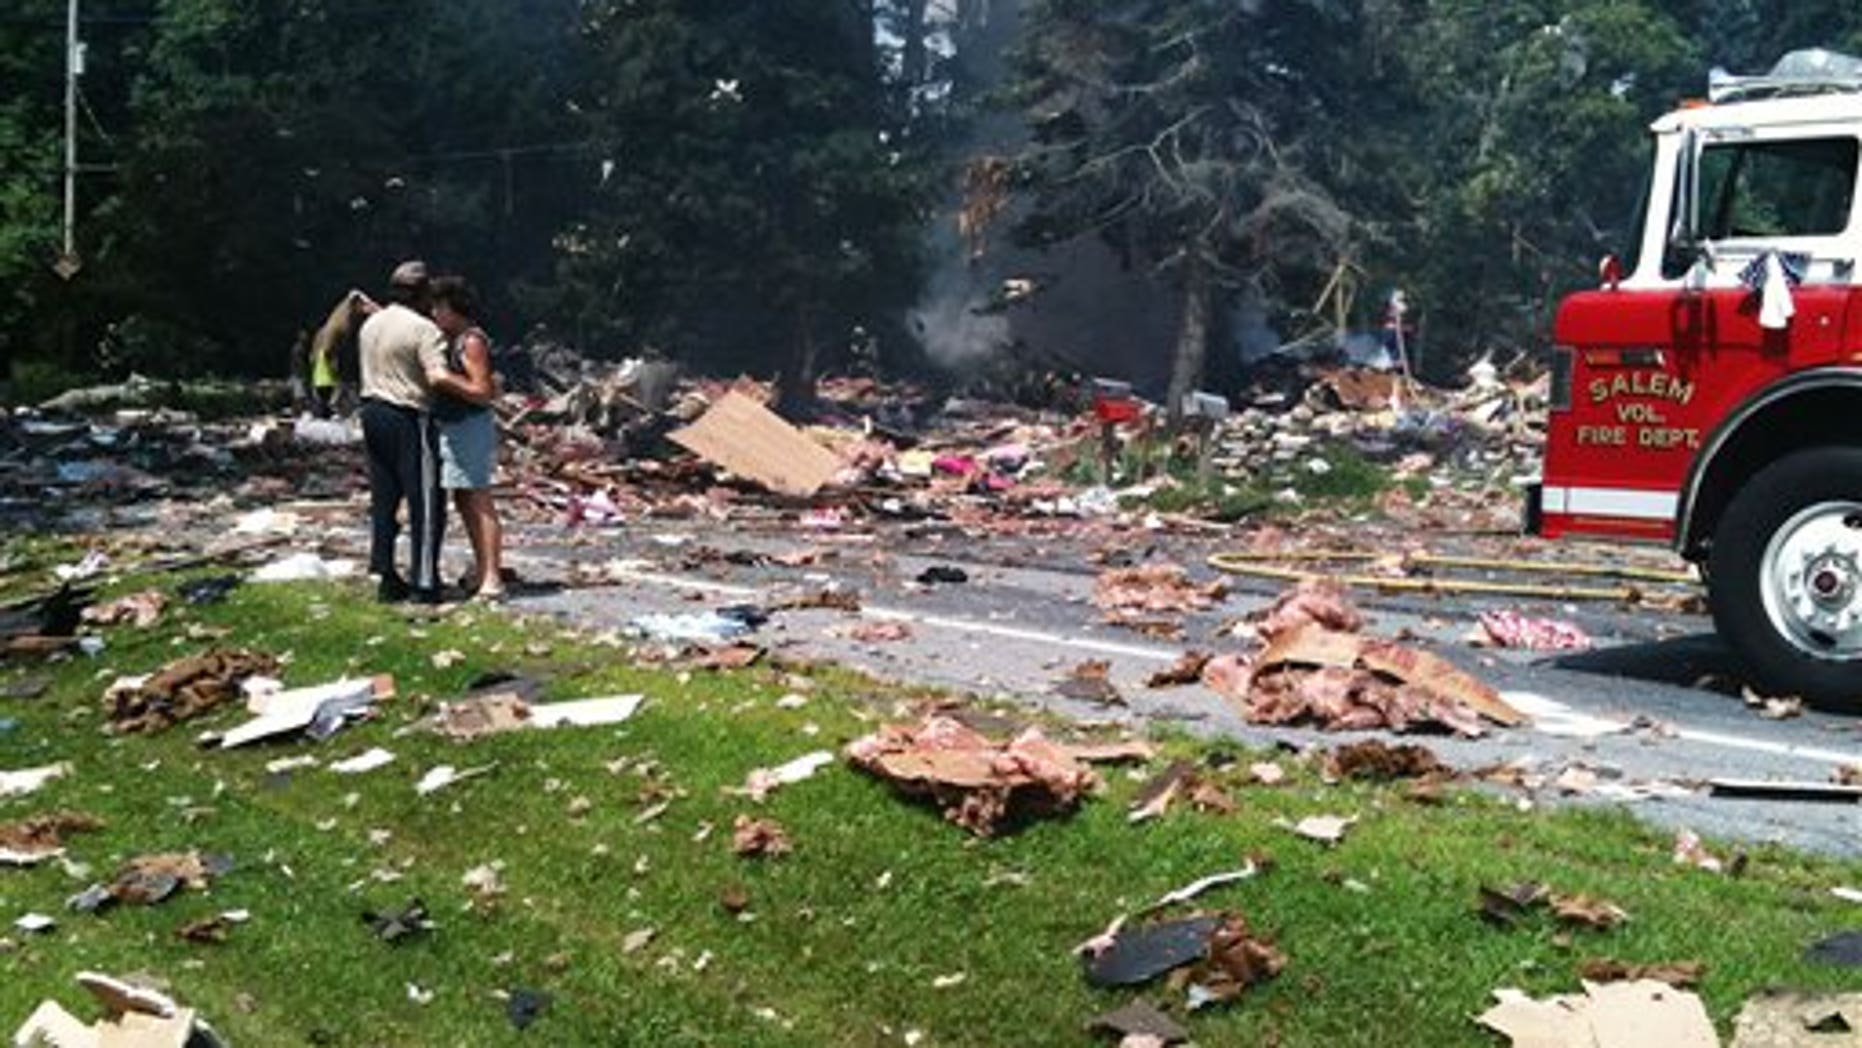 July 13: Landlords David and Linda Baldwin embrace amid the debris of their rental home after it exploded on Route 29 1/2 mile west of the intersection with Route 22 in Salem, N.Y.